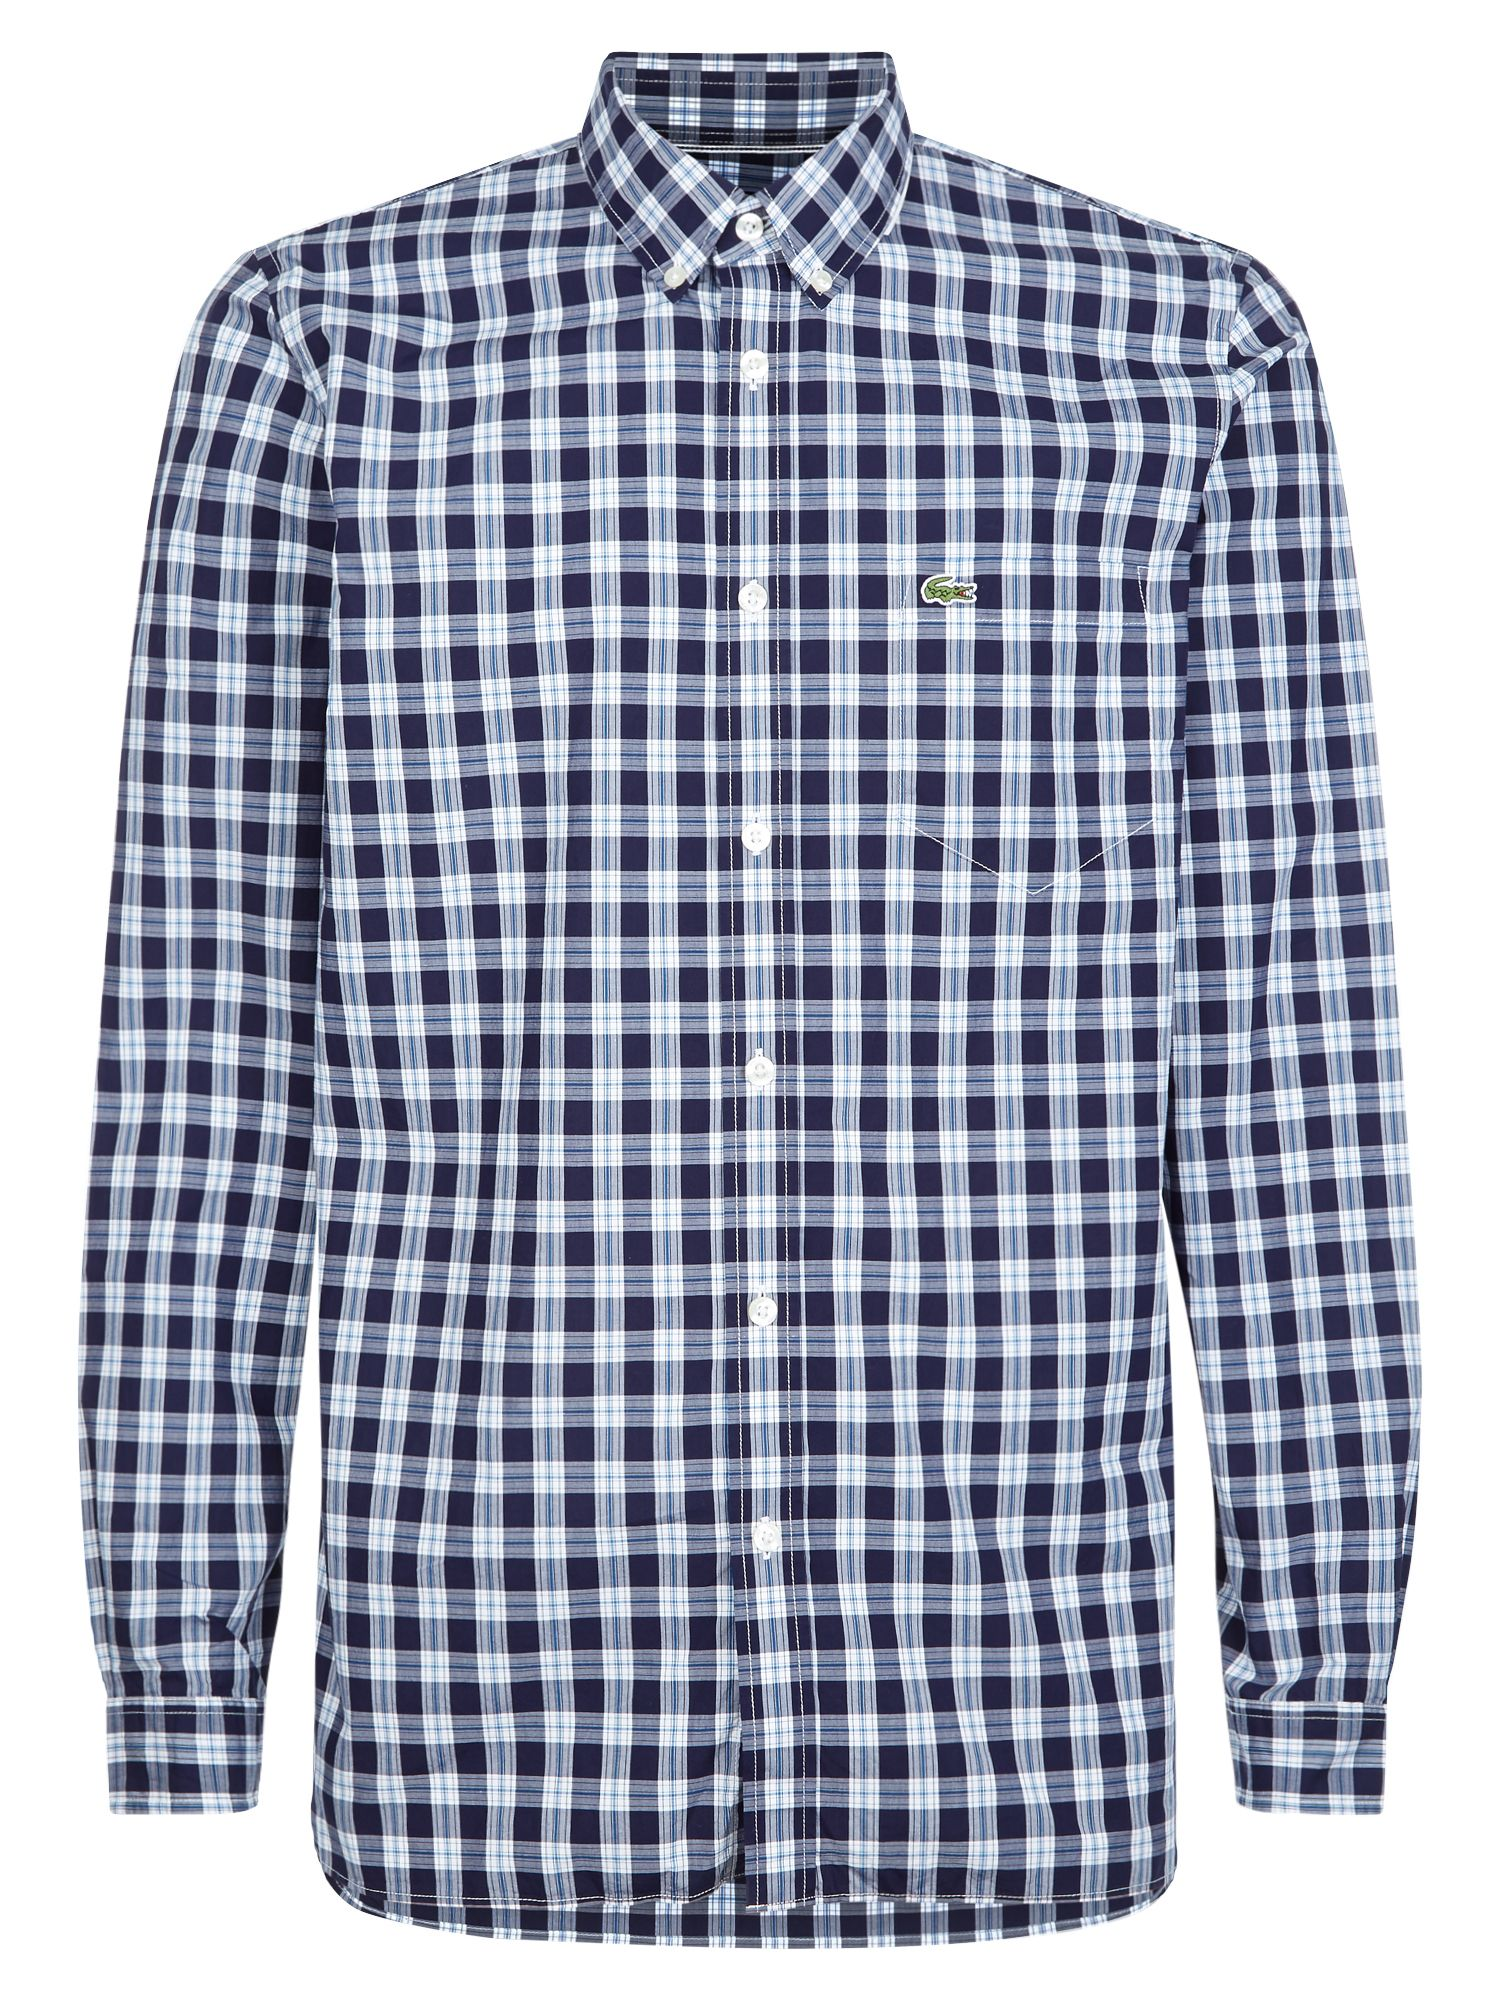 Long Sleeved Casual Woven Shirt by Lacoste